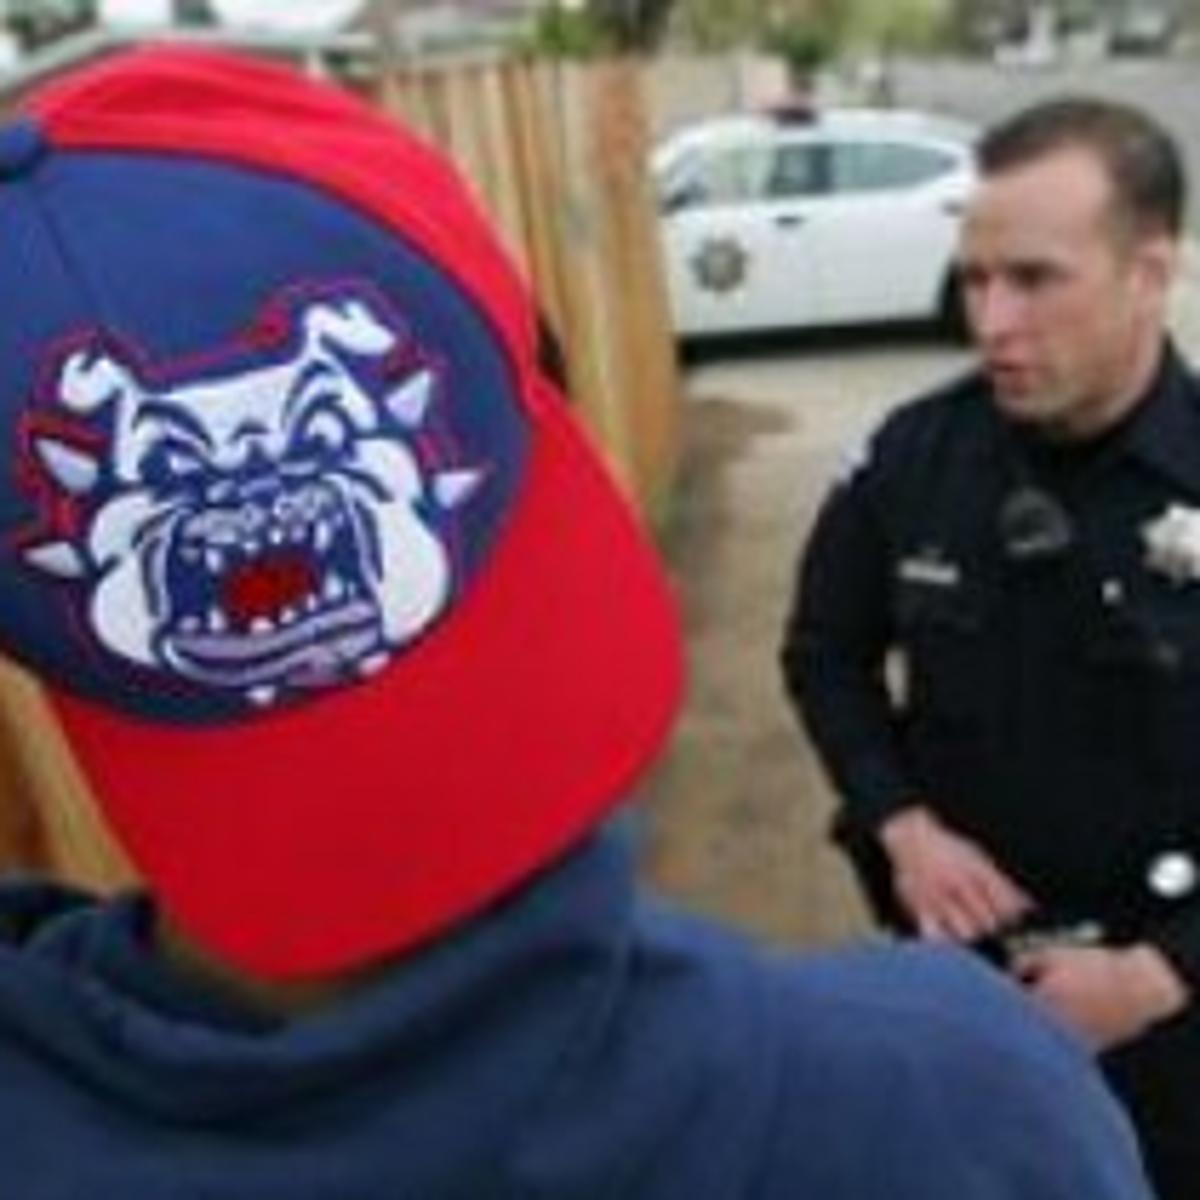 Cops attack homegrown gang in Fresno | News